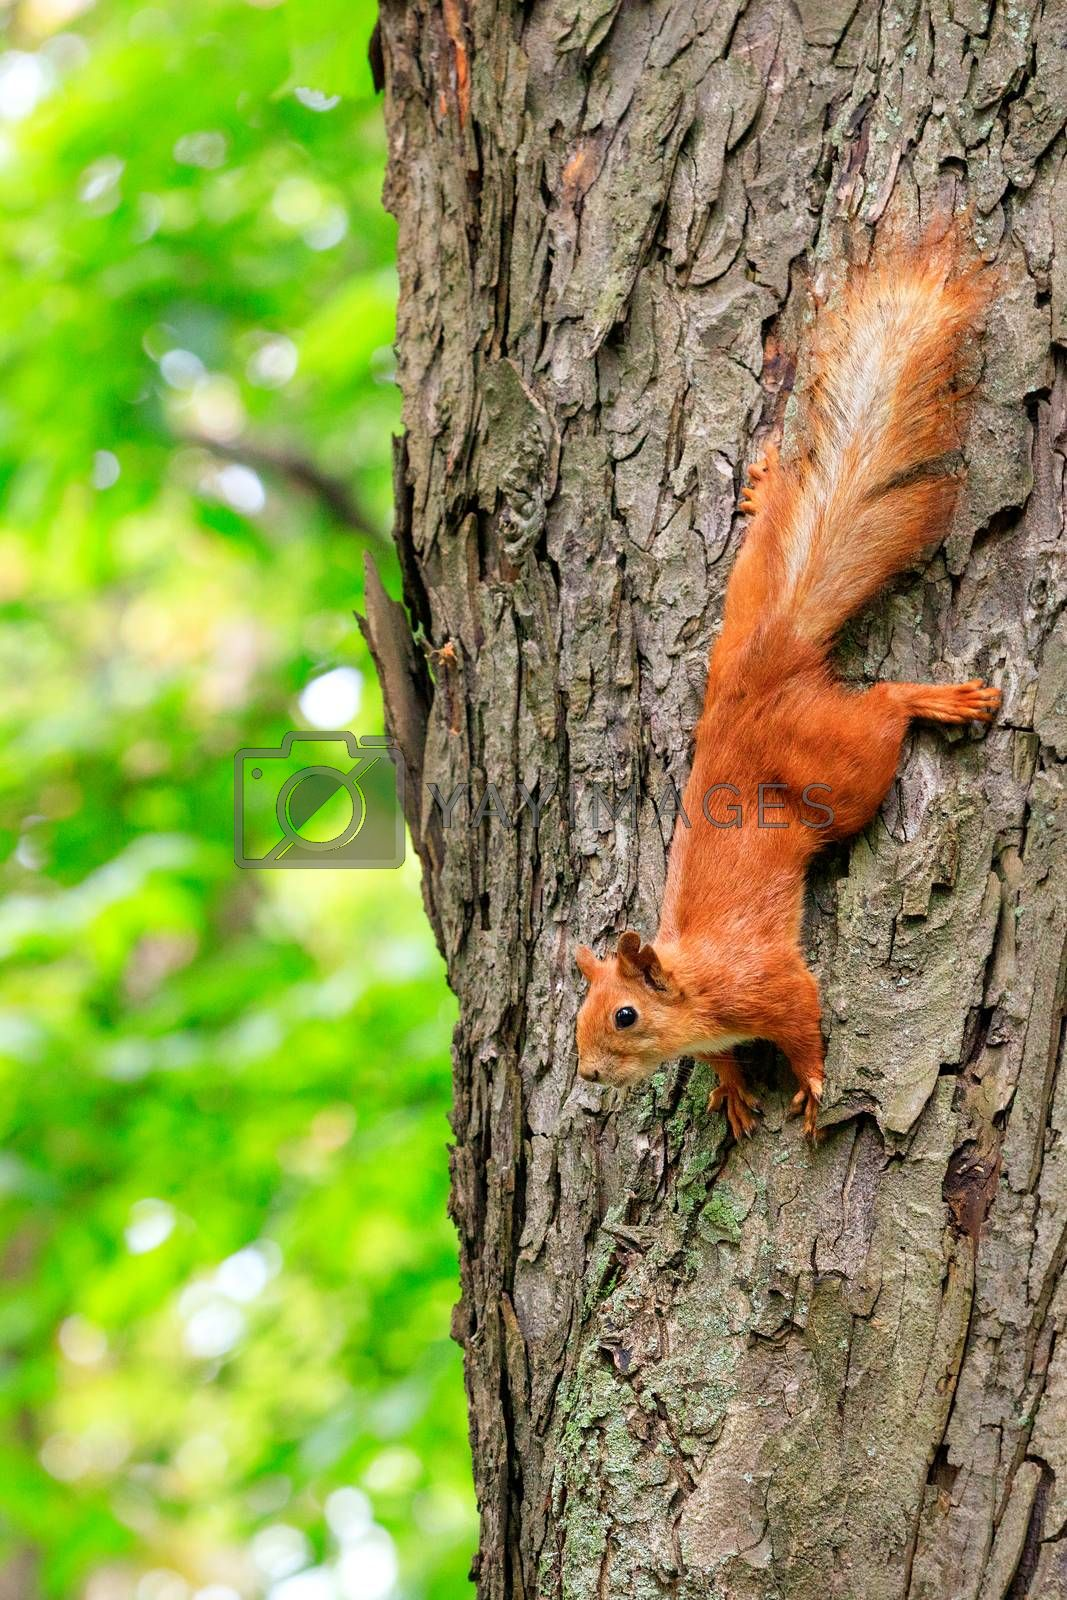 The orange fluffy squirrel carefully runs down head the tree trunk in the forest, clinging with sharp claws on its paws and listening to the surroundings, copying space.